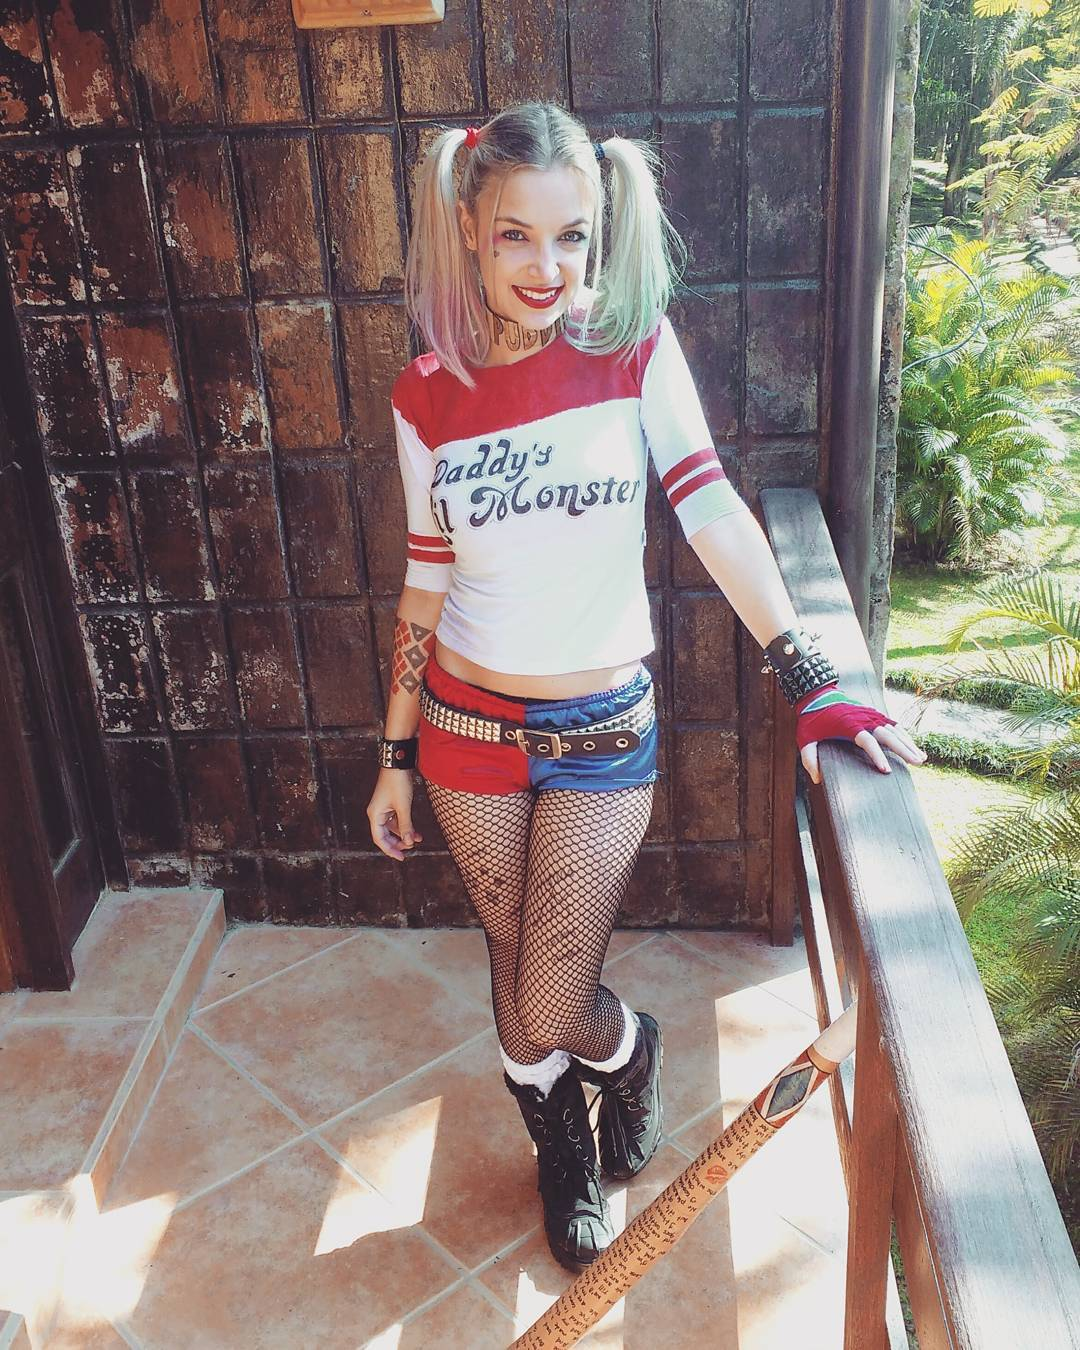 Veronica Bochi cosplaying as Harley Quinn 7